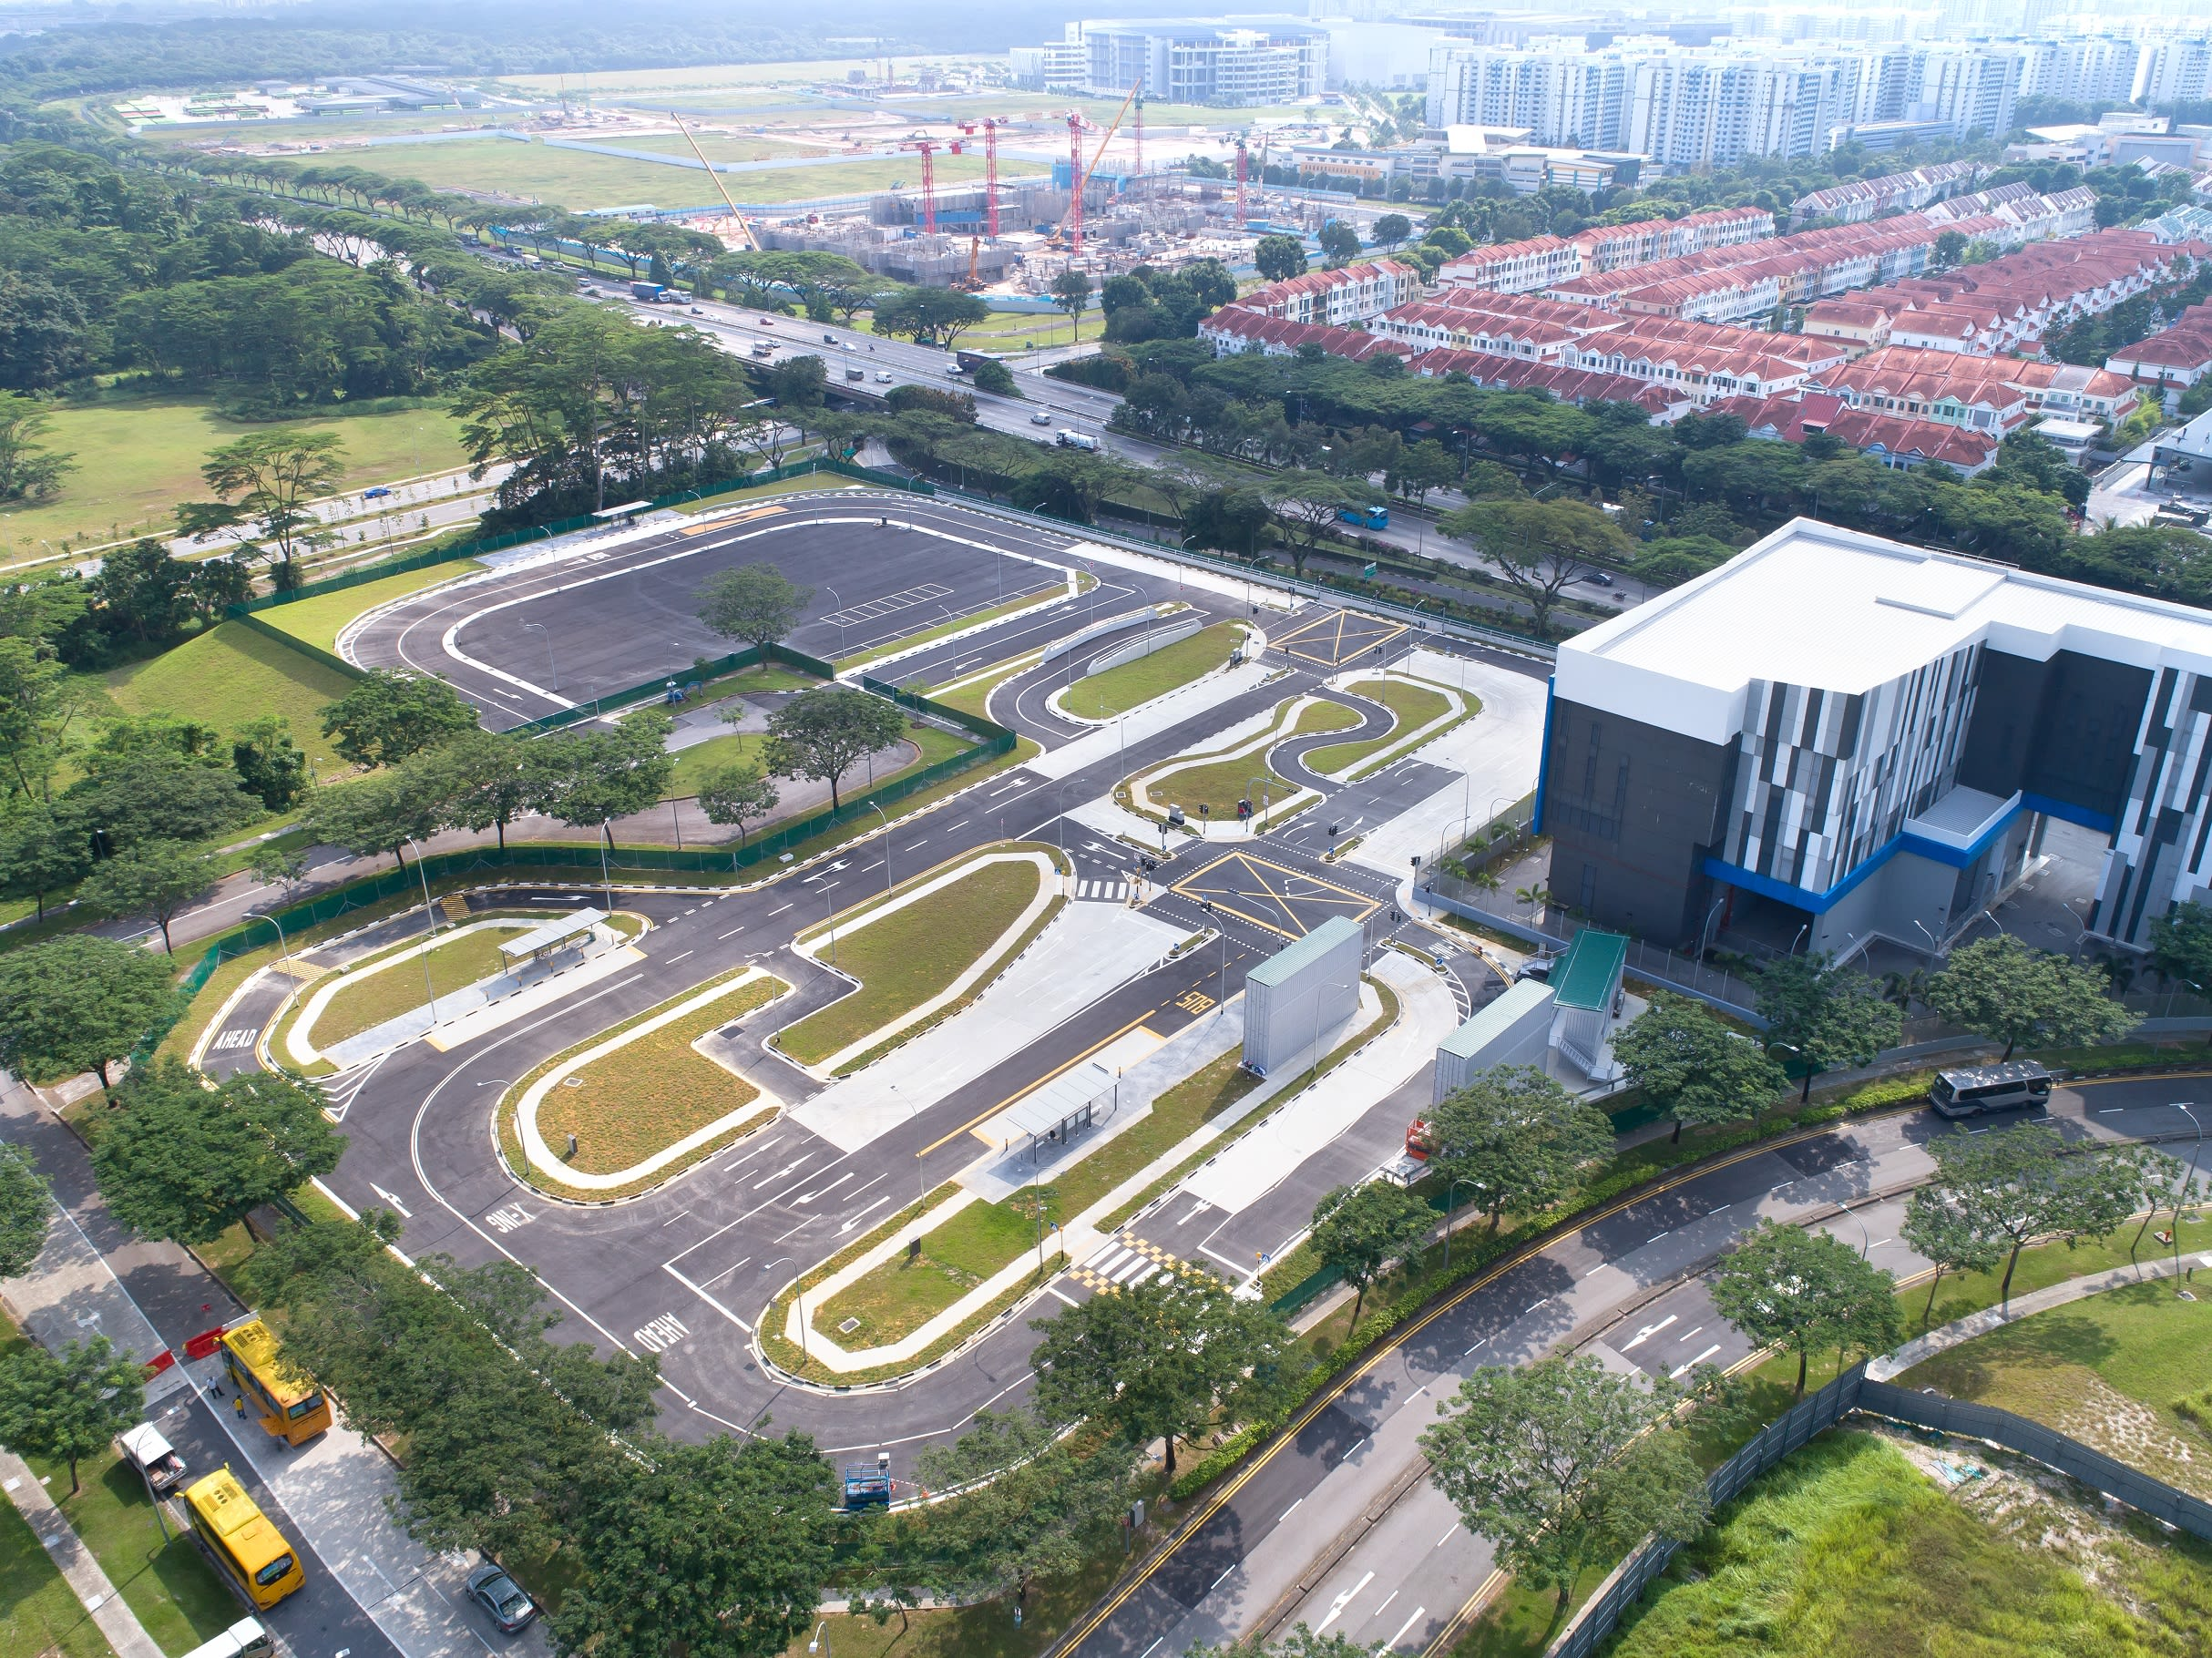 Singapore hopes to take its driverless ambitions to the public